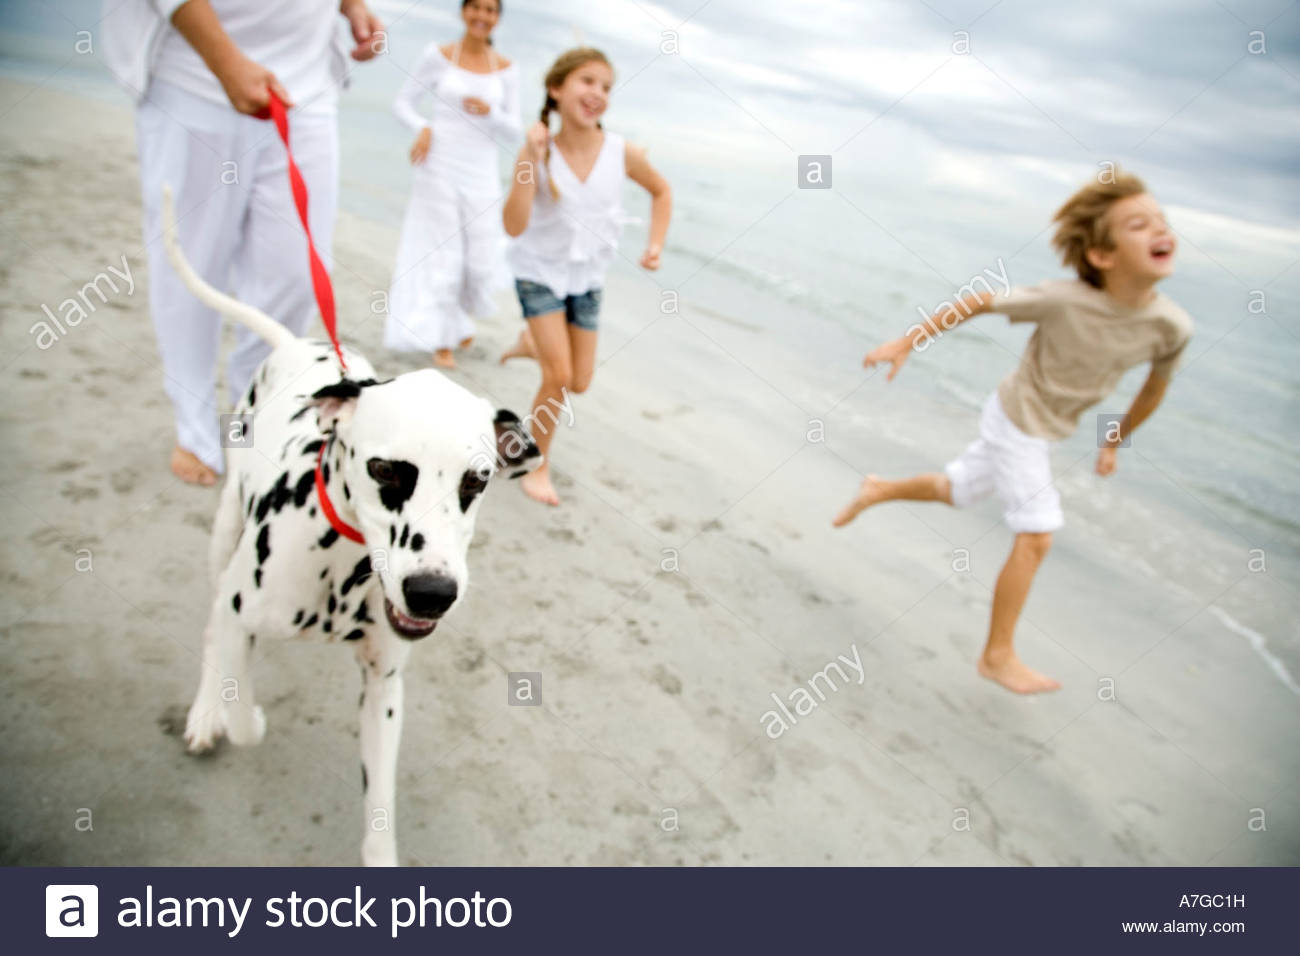 A family walking the dog on a beach - Stock Image